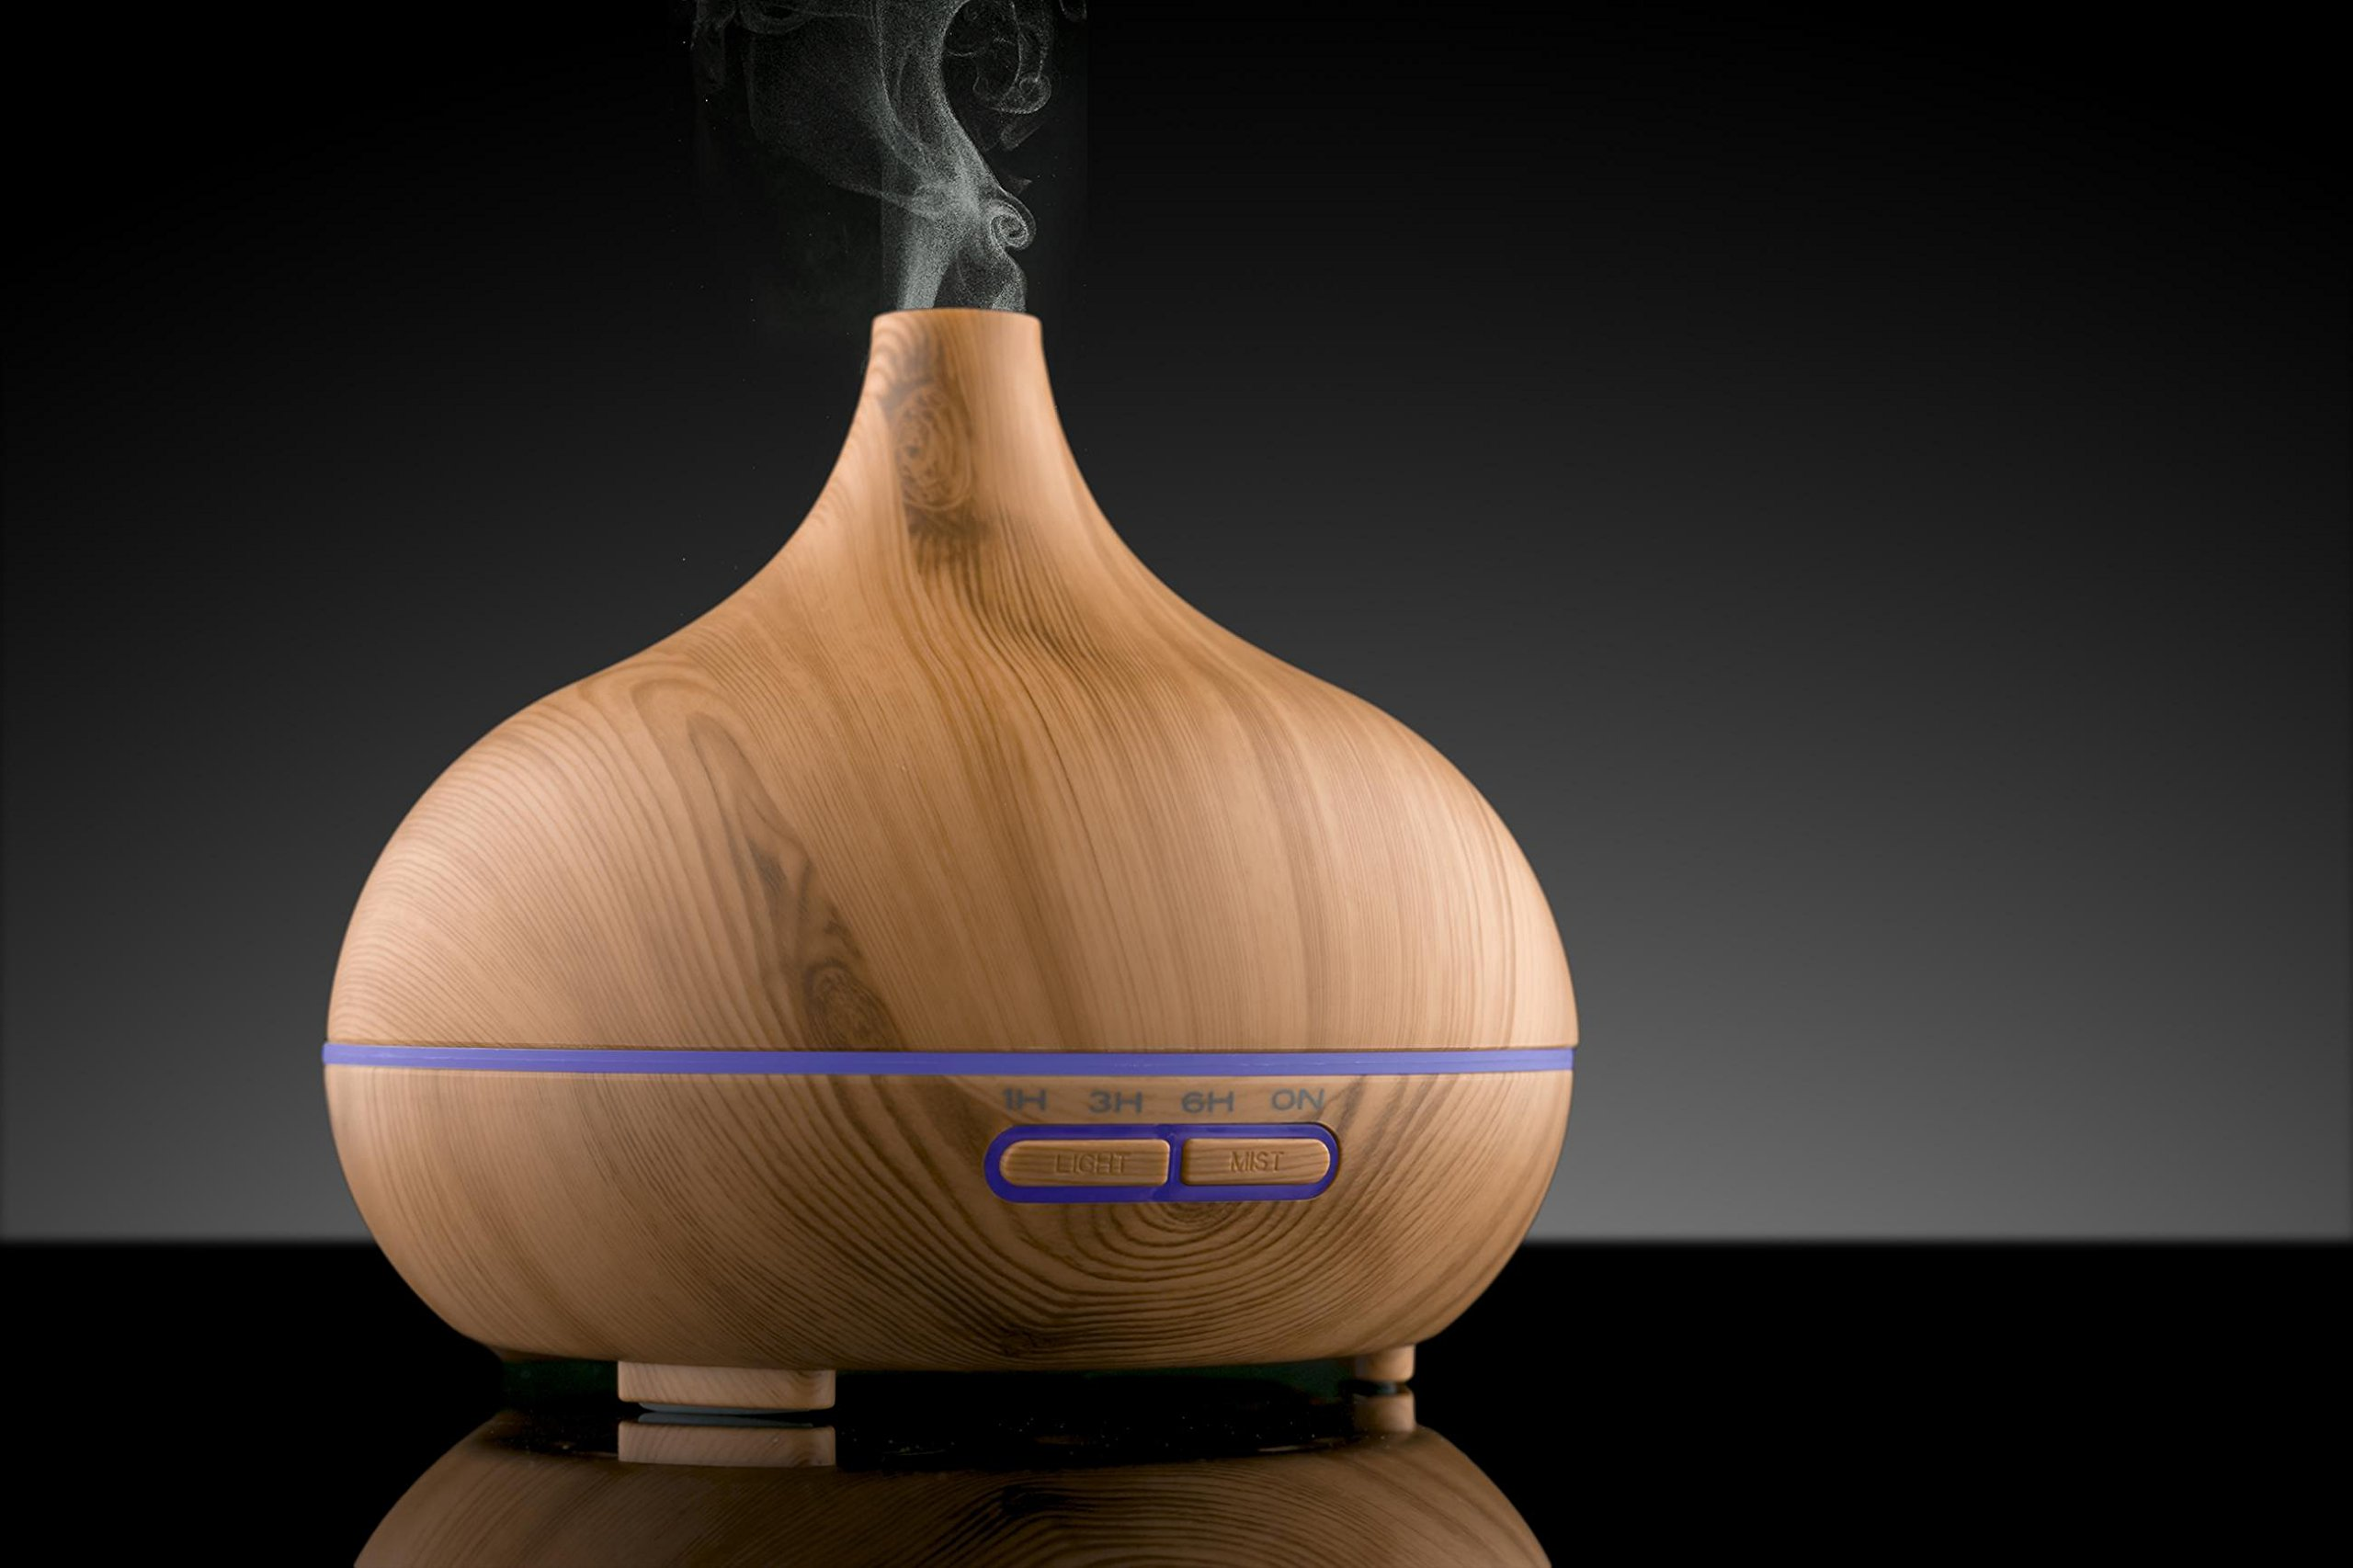 Asani Essential Oils Diffuser with 7 Color Changing LED Lights and High Capacity Tank   Humidifier, & Nightlight Function   Aromatherapy for Bedroom/Living Room/Office by Asani (Image #3)